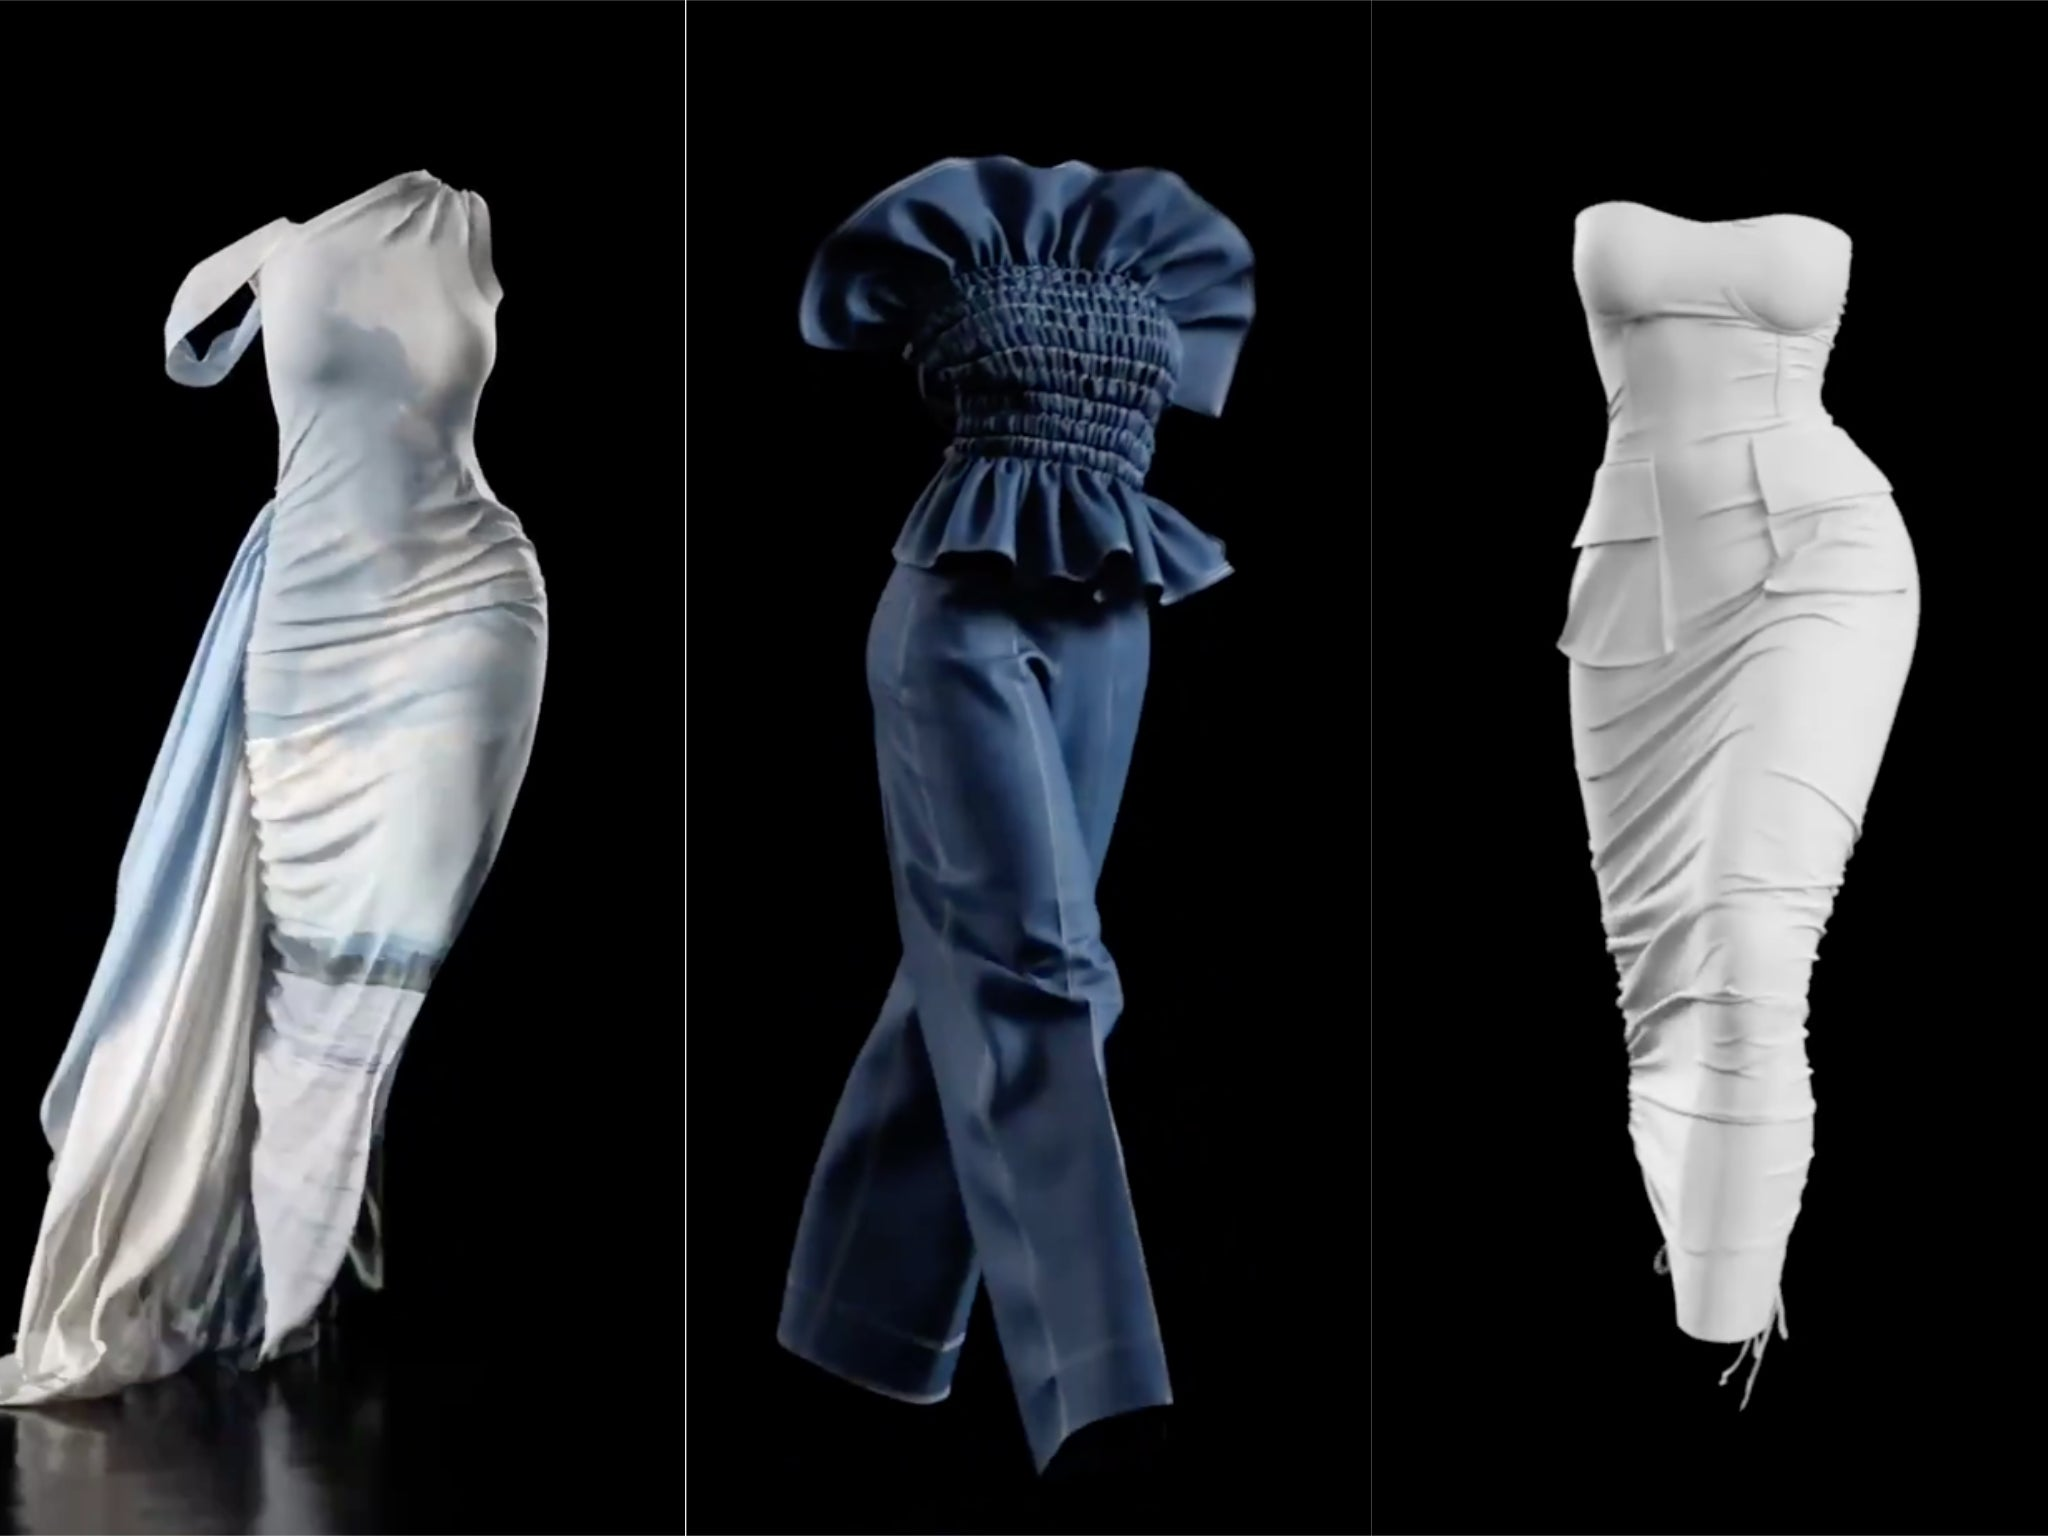 Fashion label Hanifa puts on 'groundbreaking' virtual show using 3D models